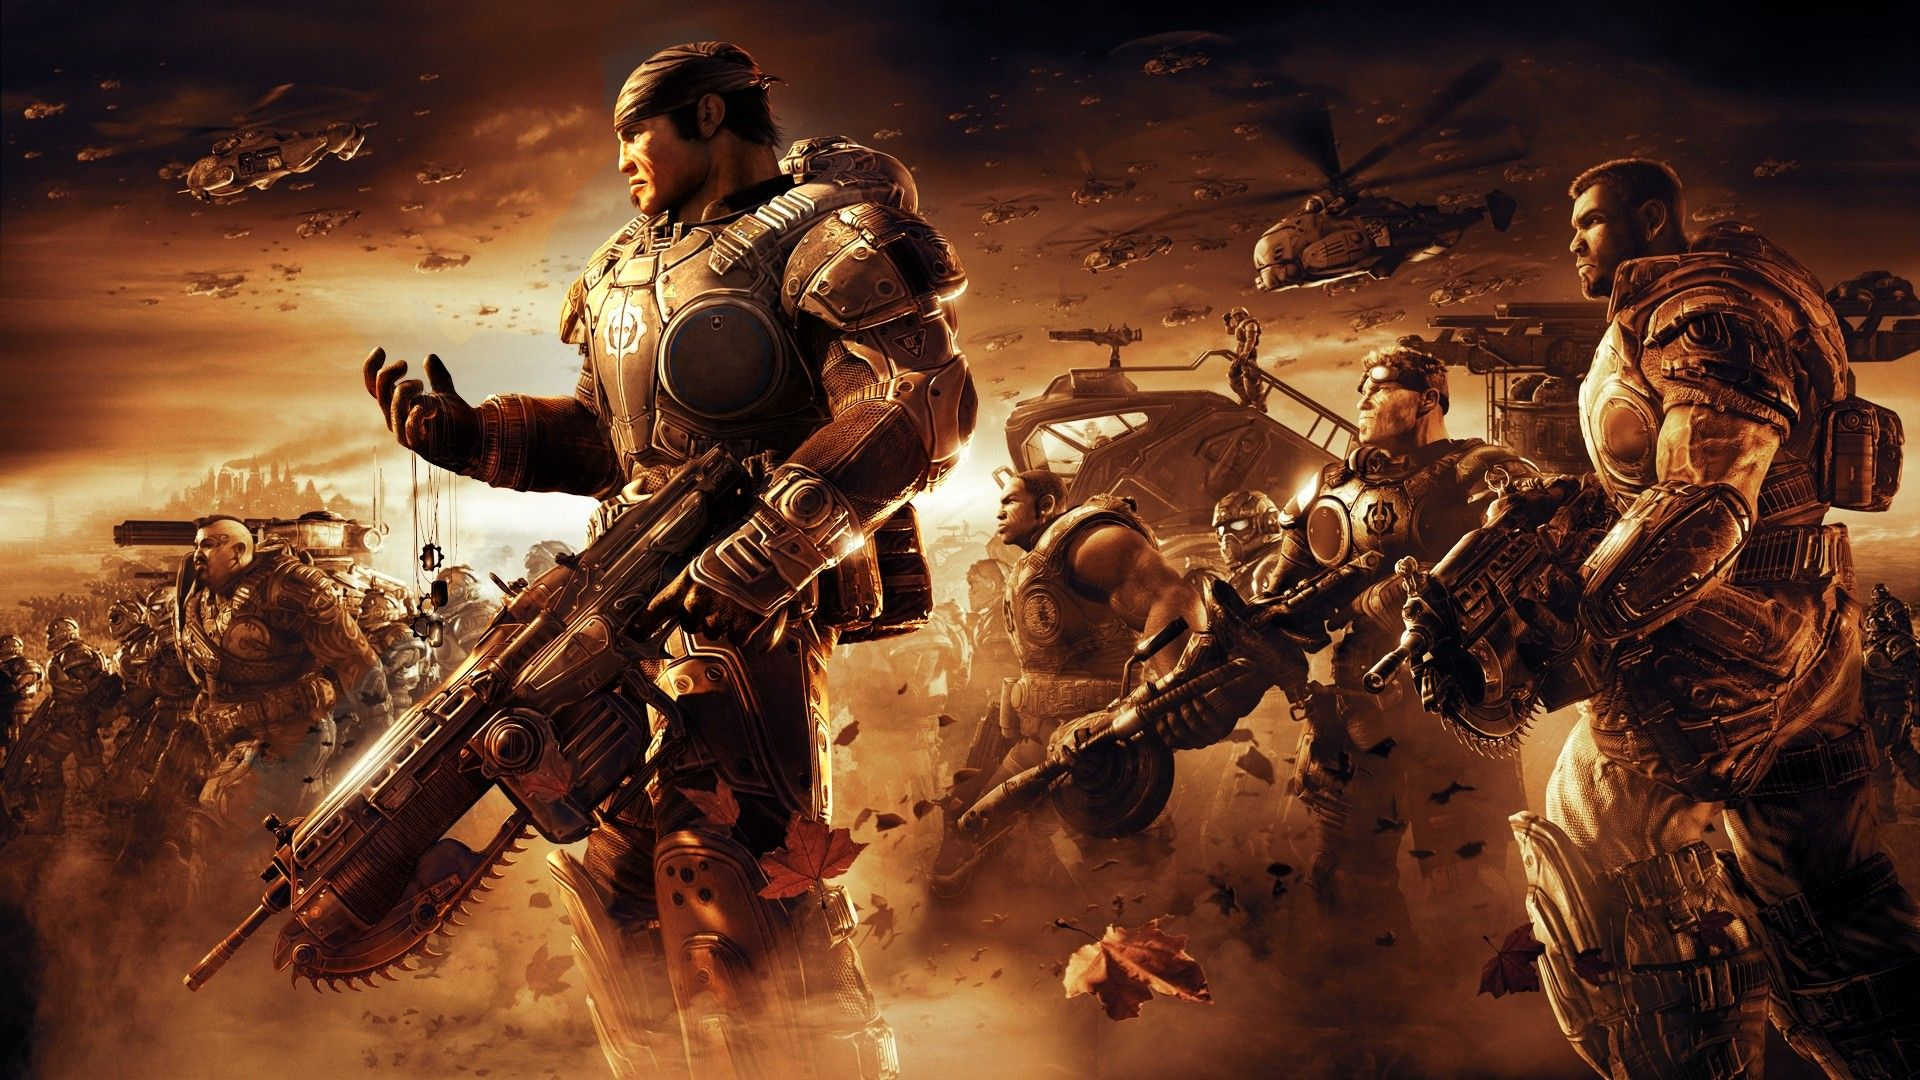 Gears Of War 2 Wallpapers Top Free Gears Of War 2 Backgrounds